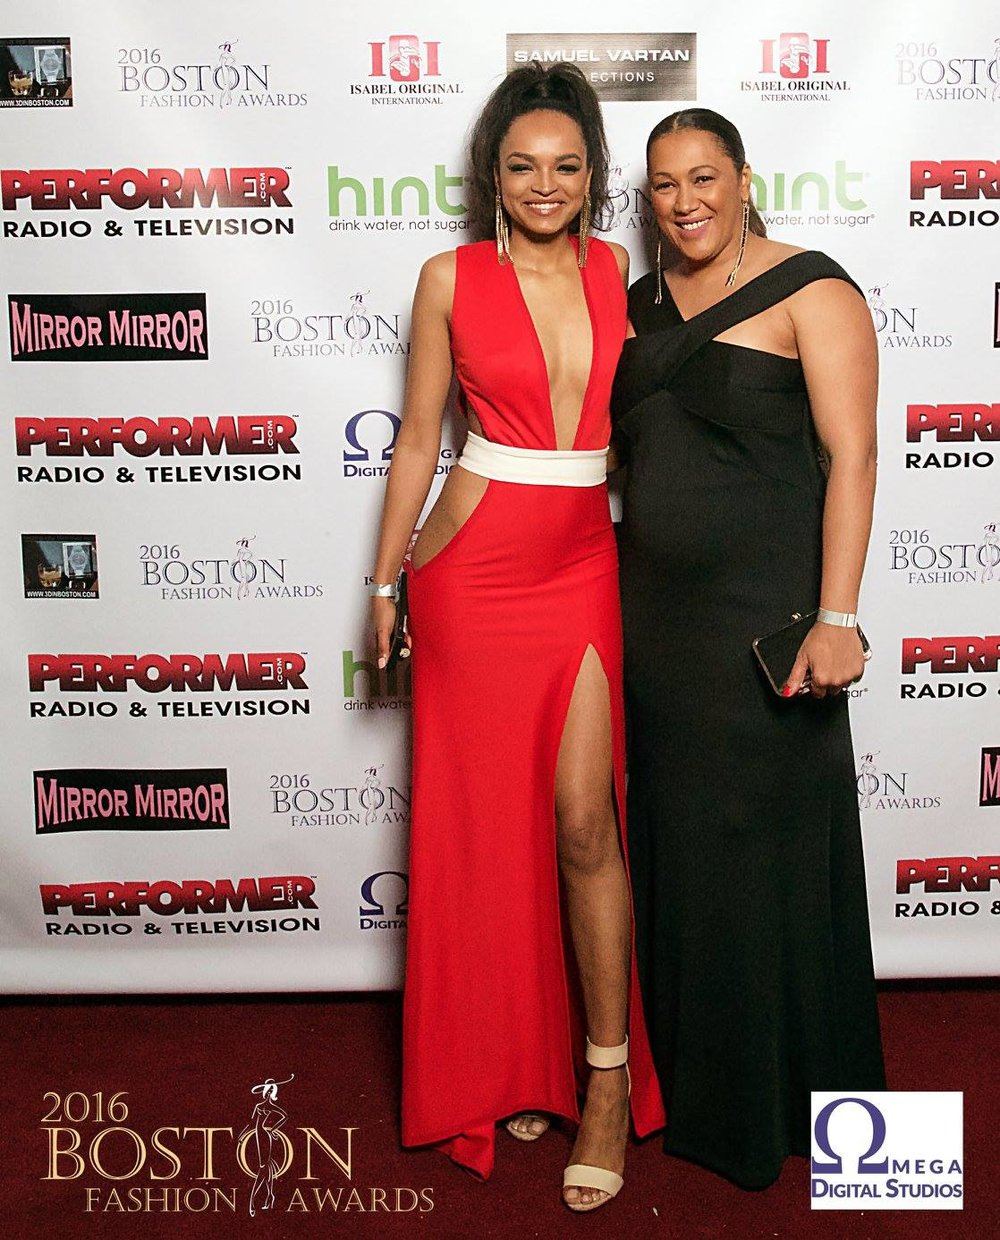 Boston Fashion Award 2016 - Model: Tirzah Evora & Designer Angelica Timas